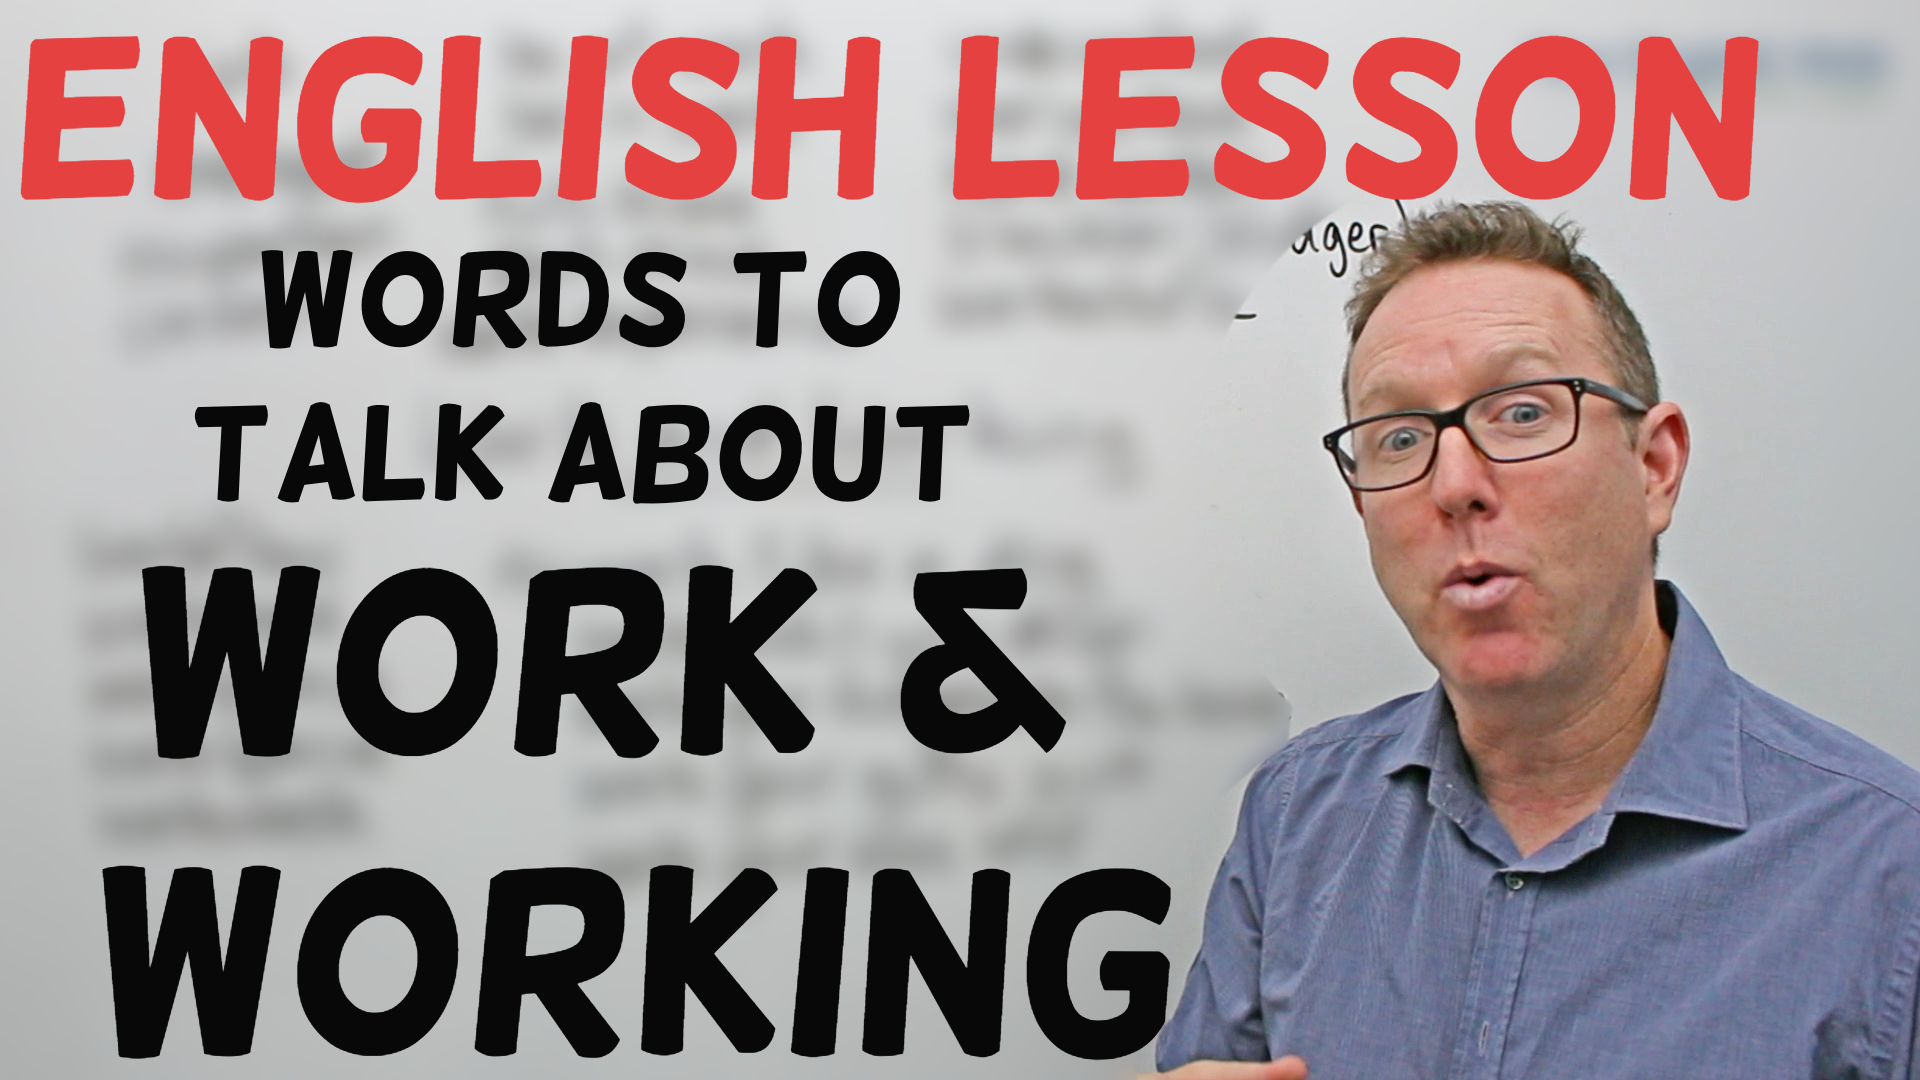 work and working vocabulary